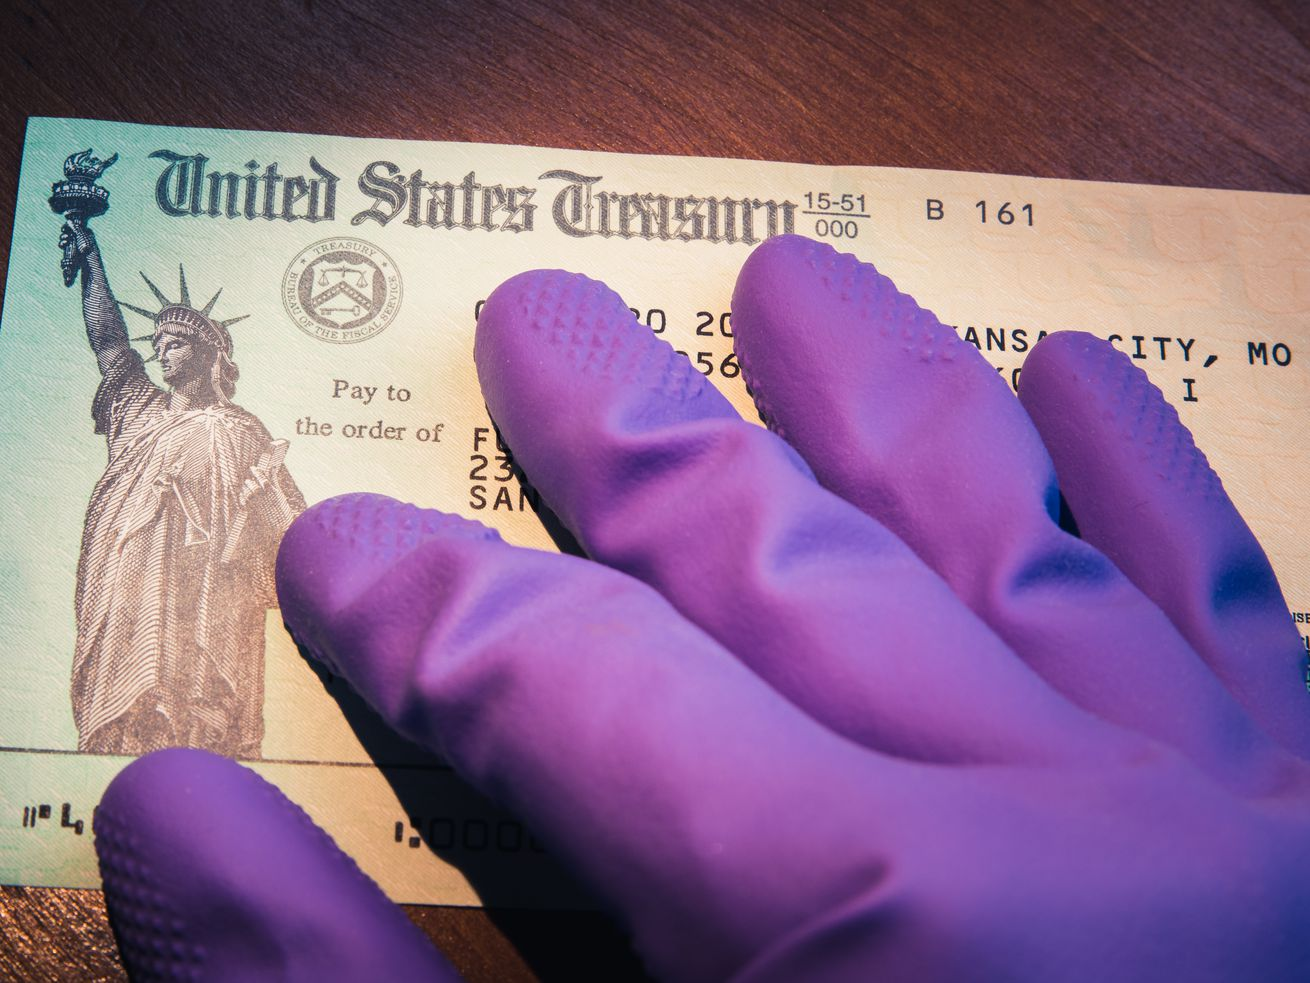 Gloved hand touching a tax return Treasury check to symbolize the COVID pandemic economic impact.